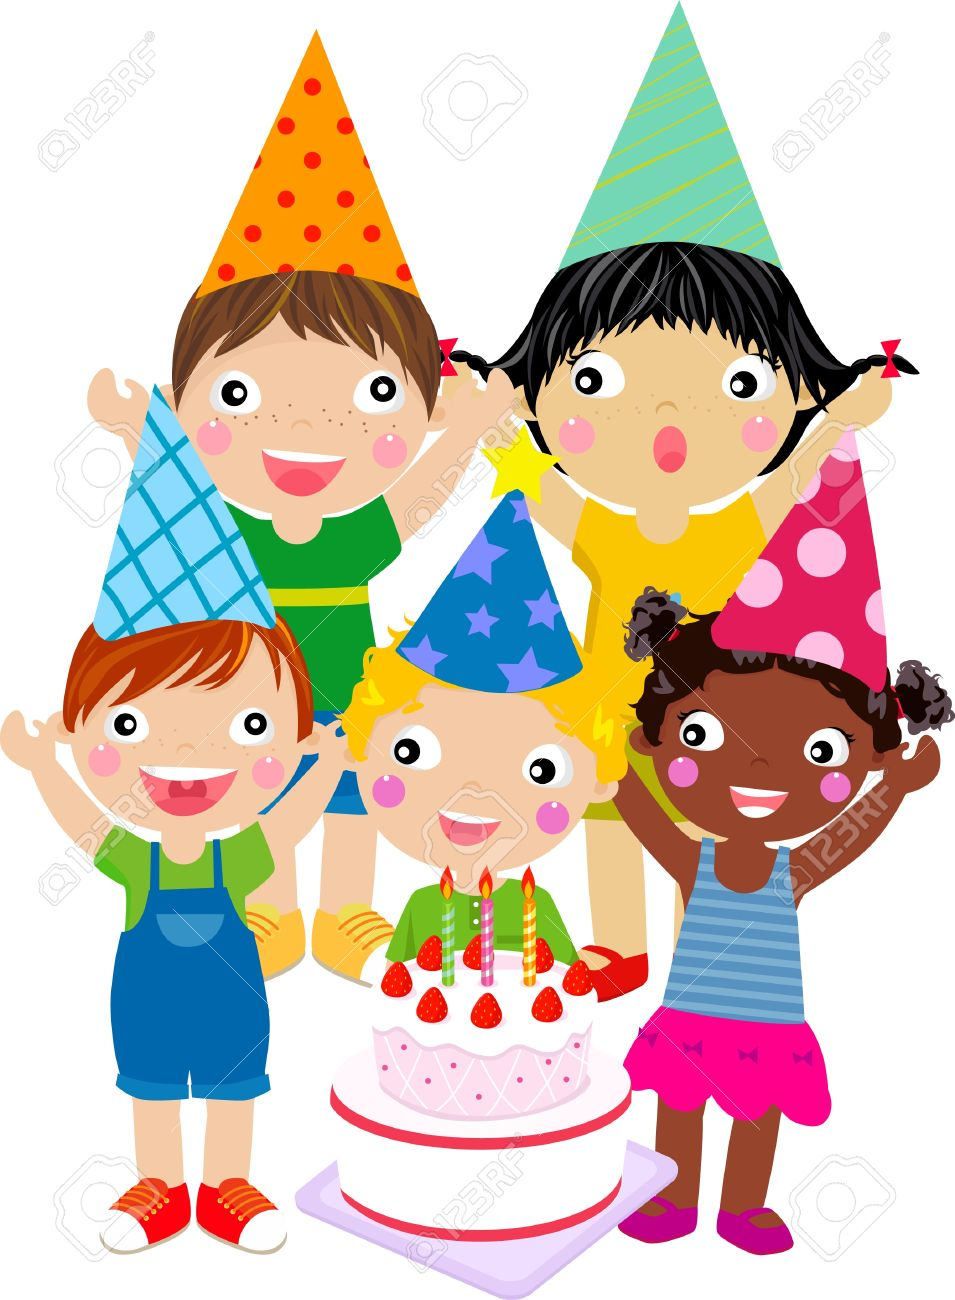 birthday boy clipart images ; 21782341-kids-and-birthday-cake